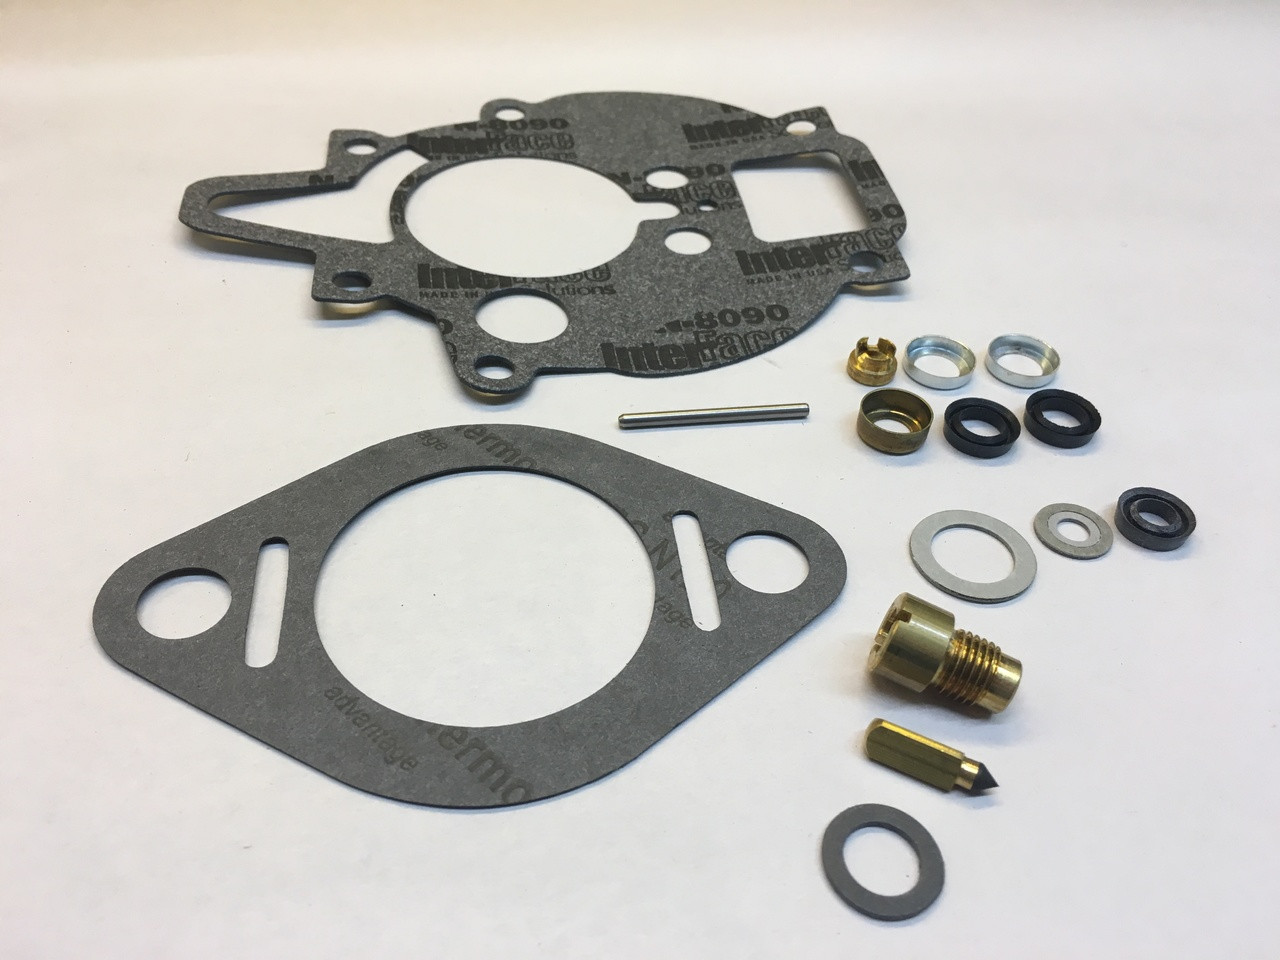 Carb Kit- JD 3010-4020 Zenith Carb